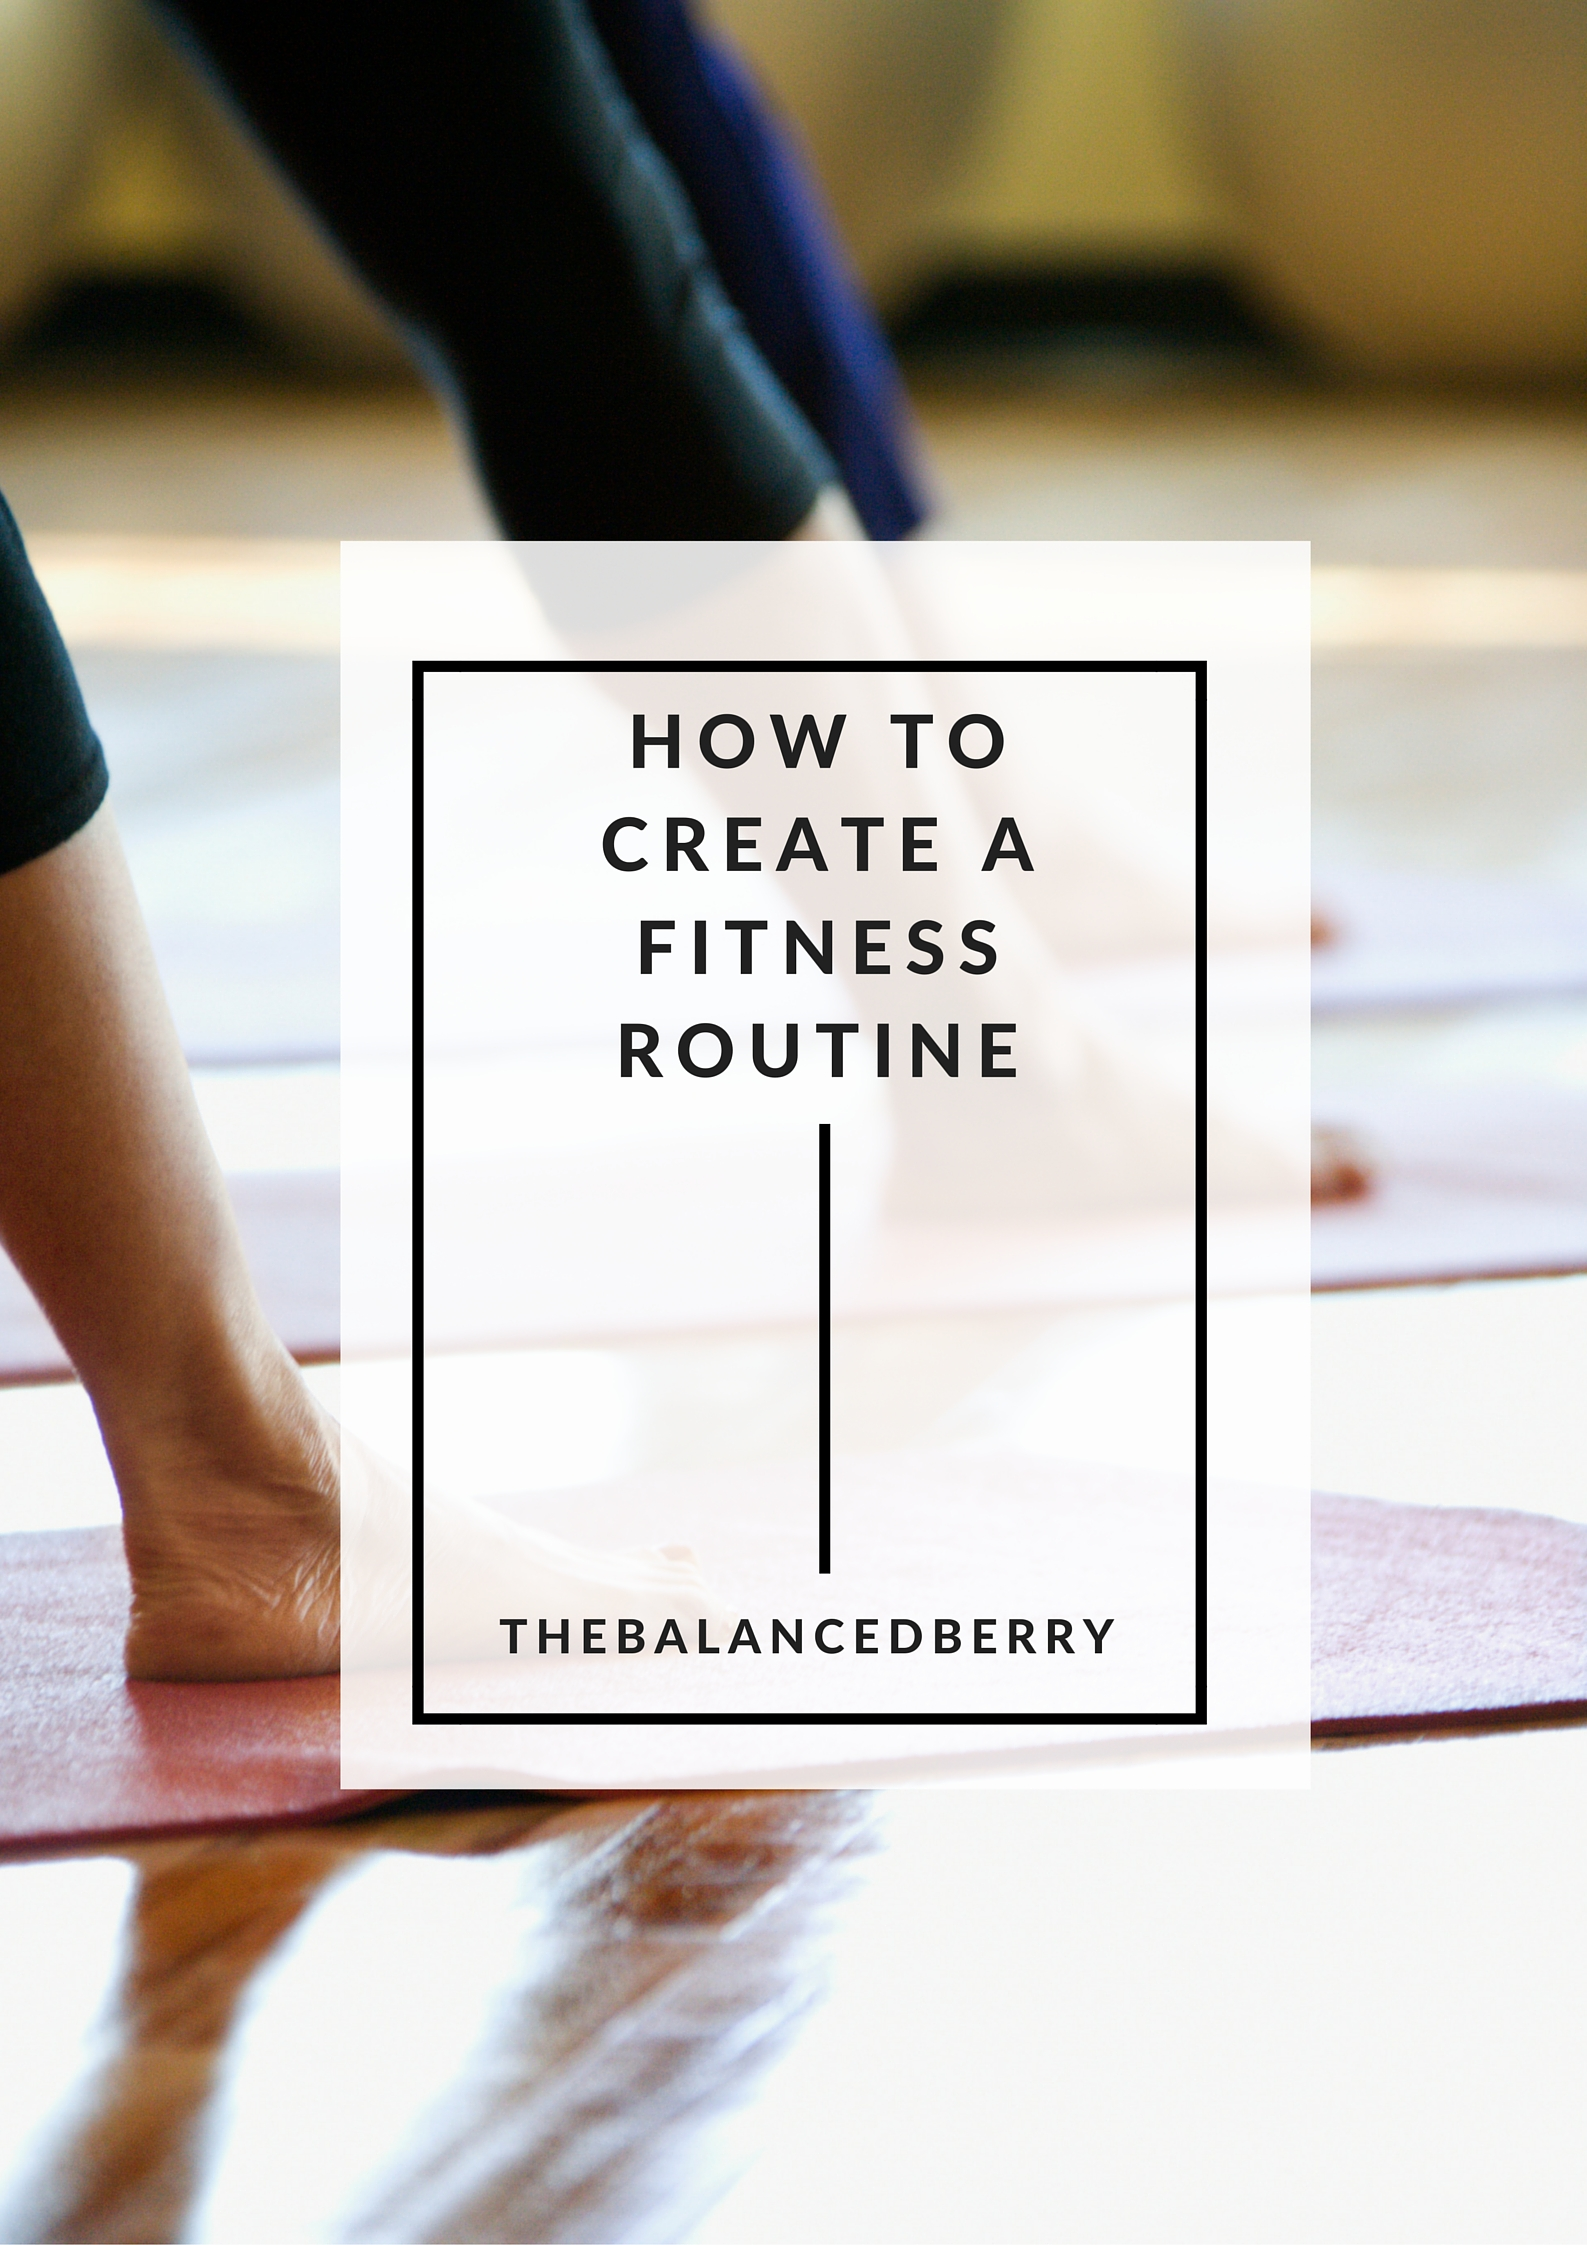 How to establish a fitness routine. Everything you need to know about creating a balanced plan.